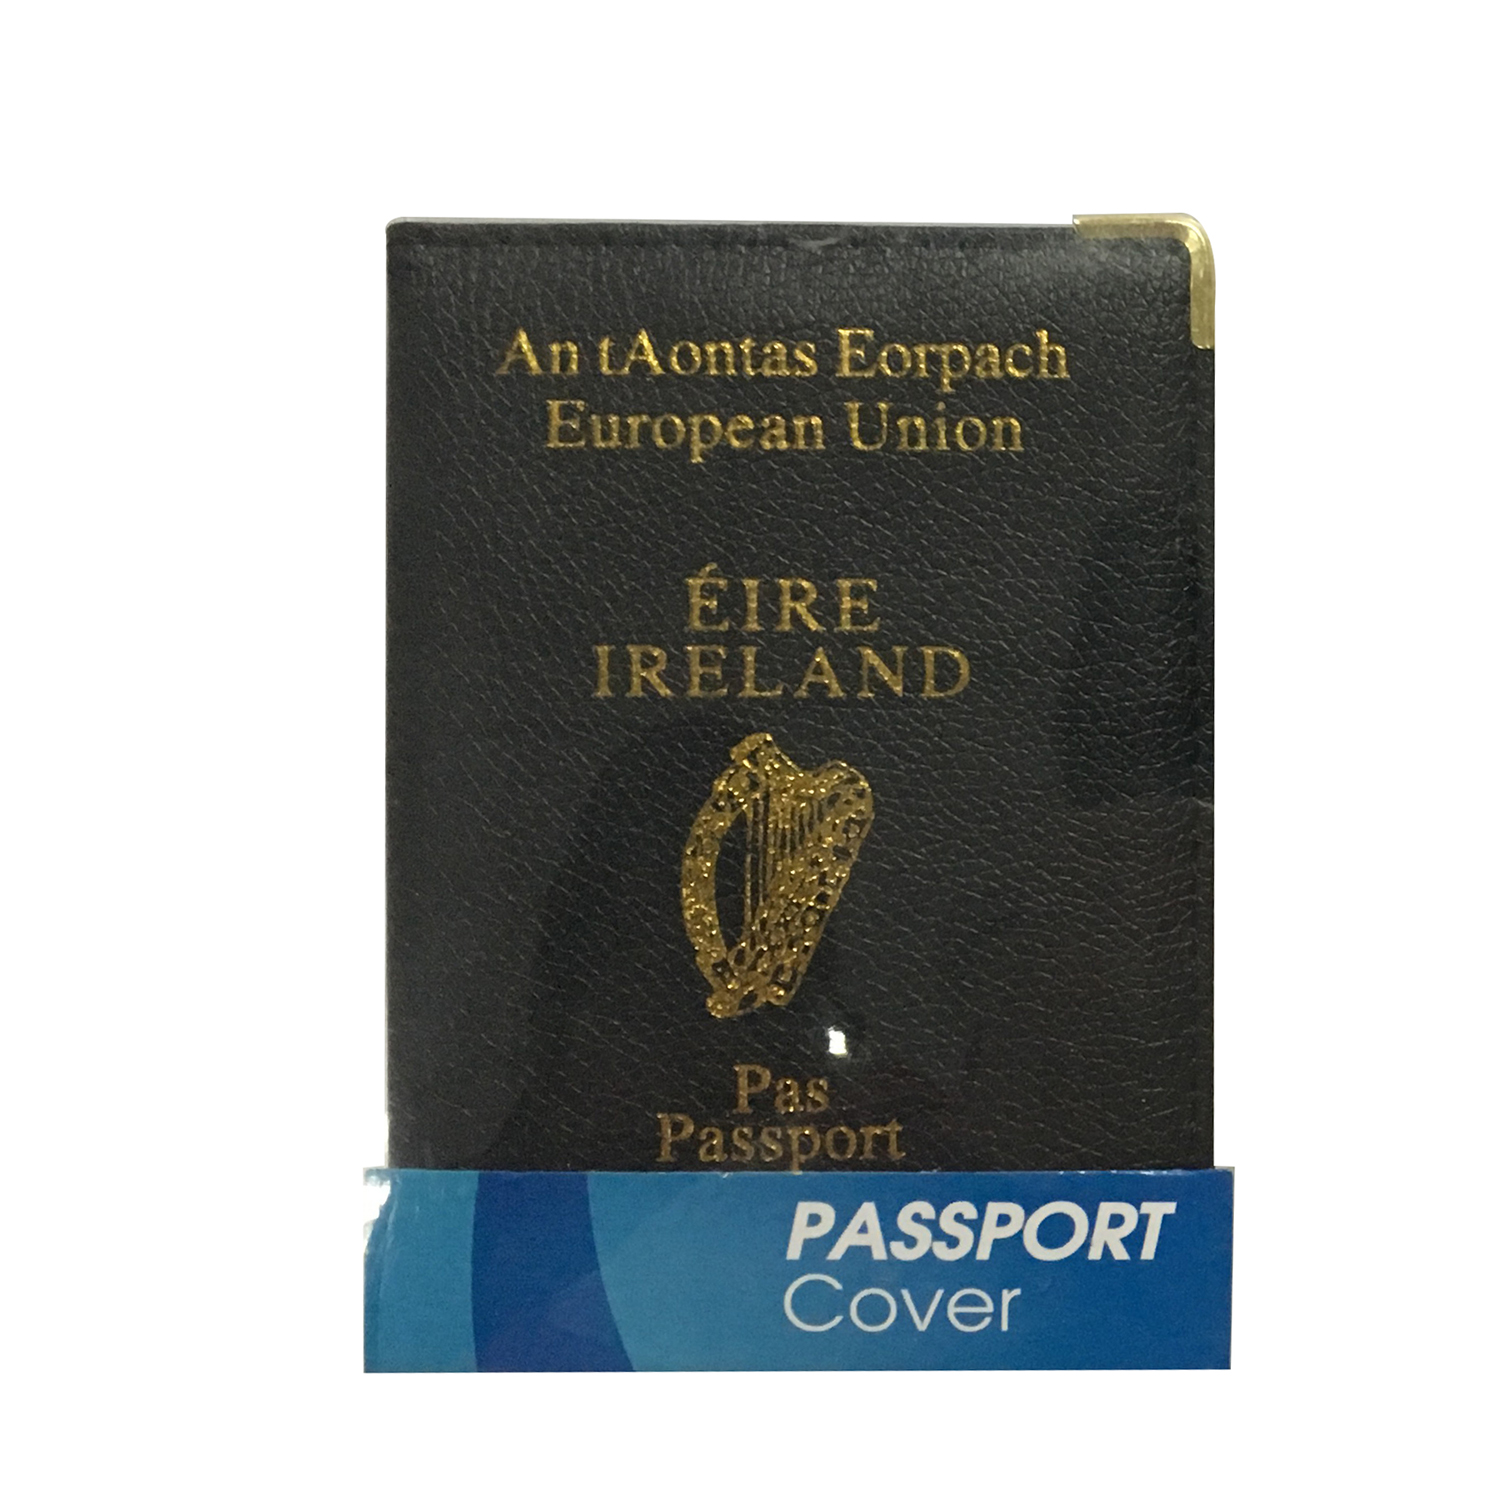 Passport Cover Home Store More Tap To Expand